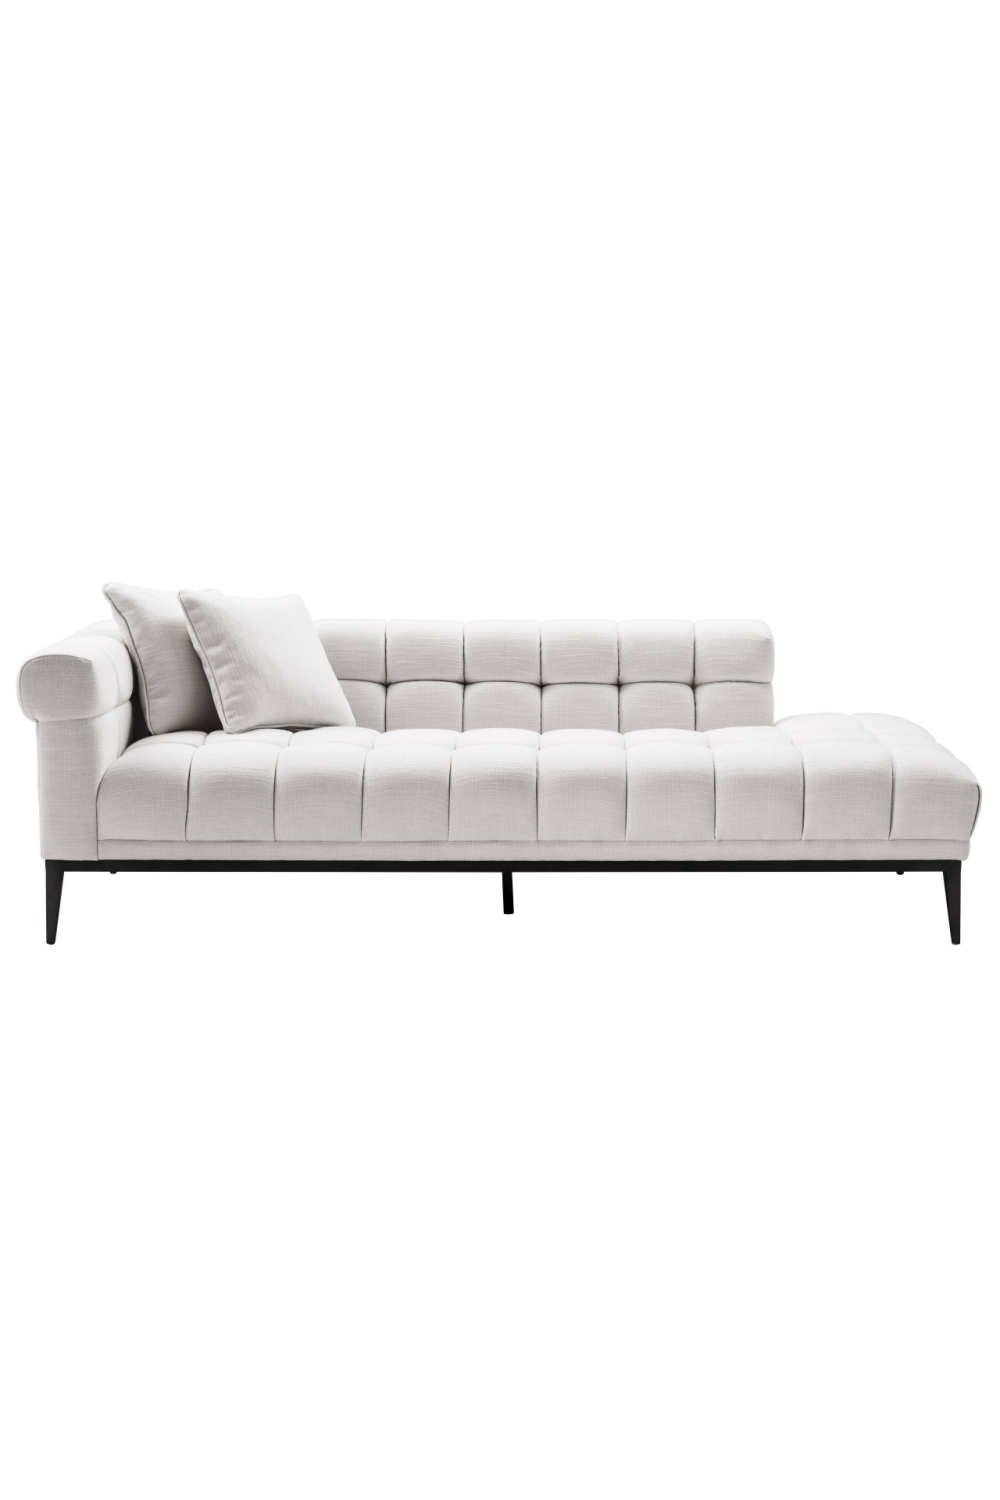 White Biscuit-Tufted Lounge Sofa | Eichholtz Aurelio - L